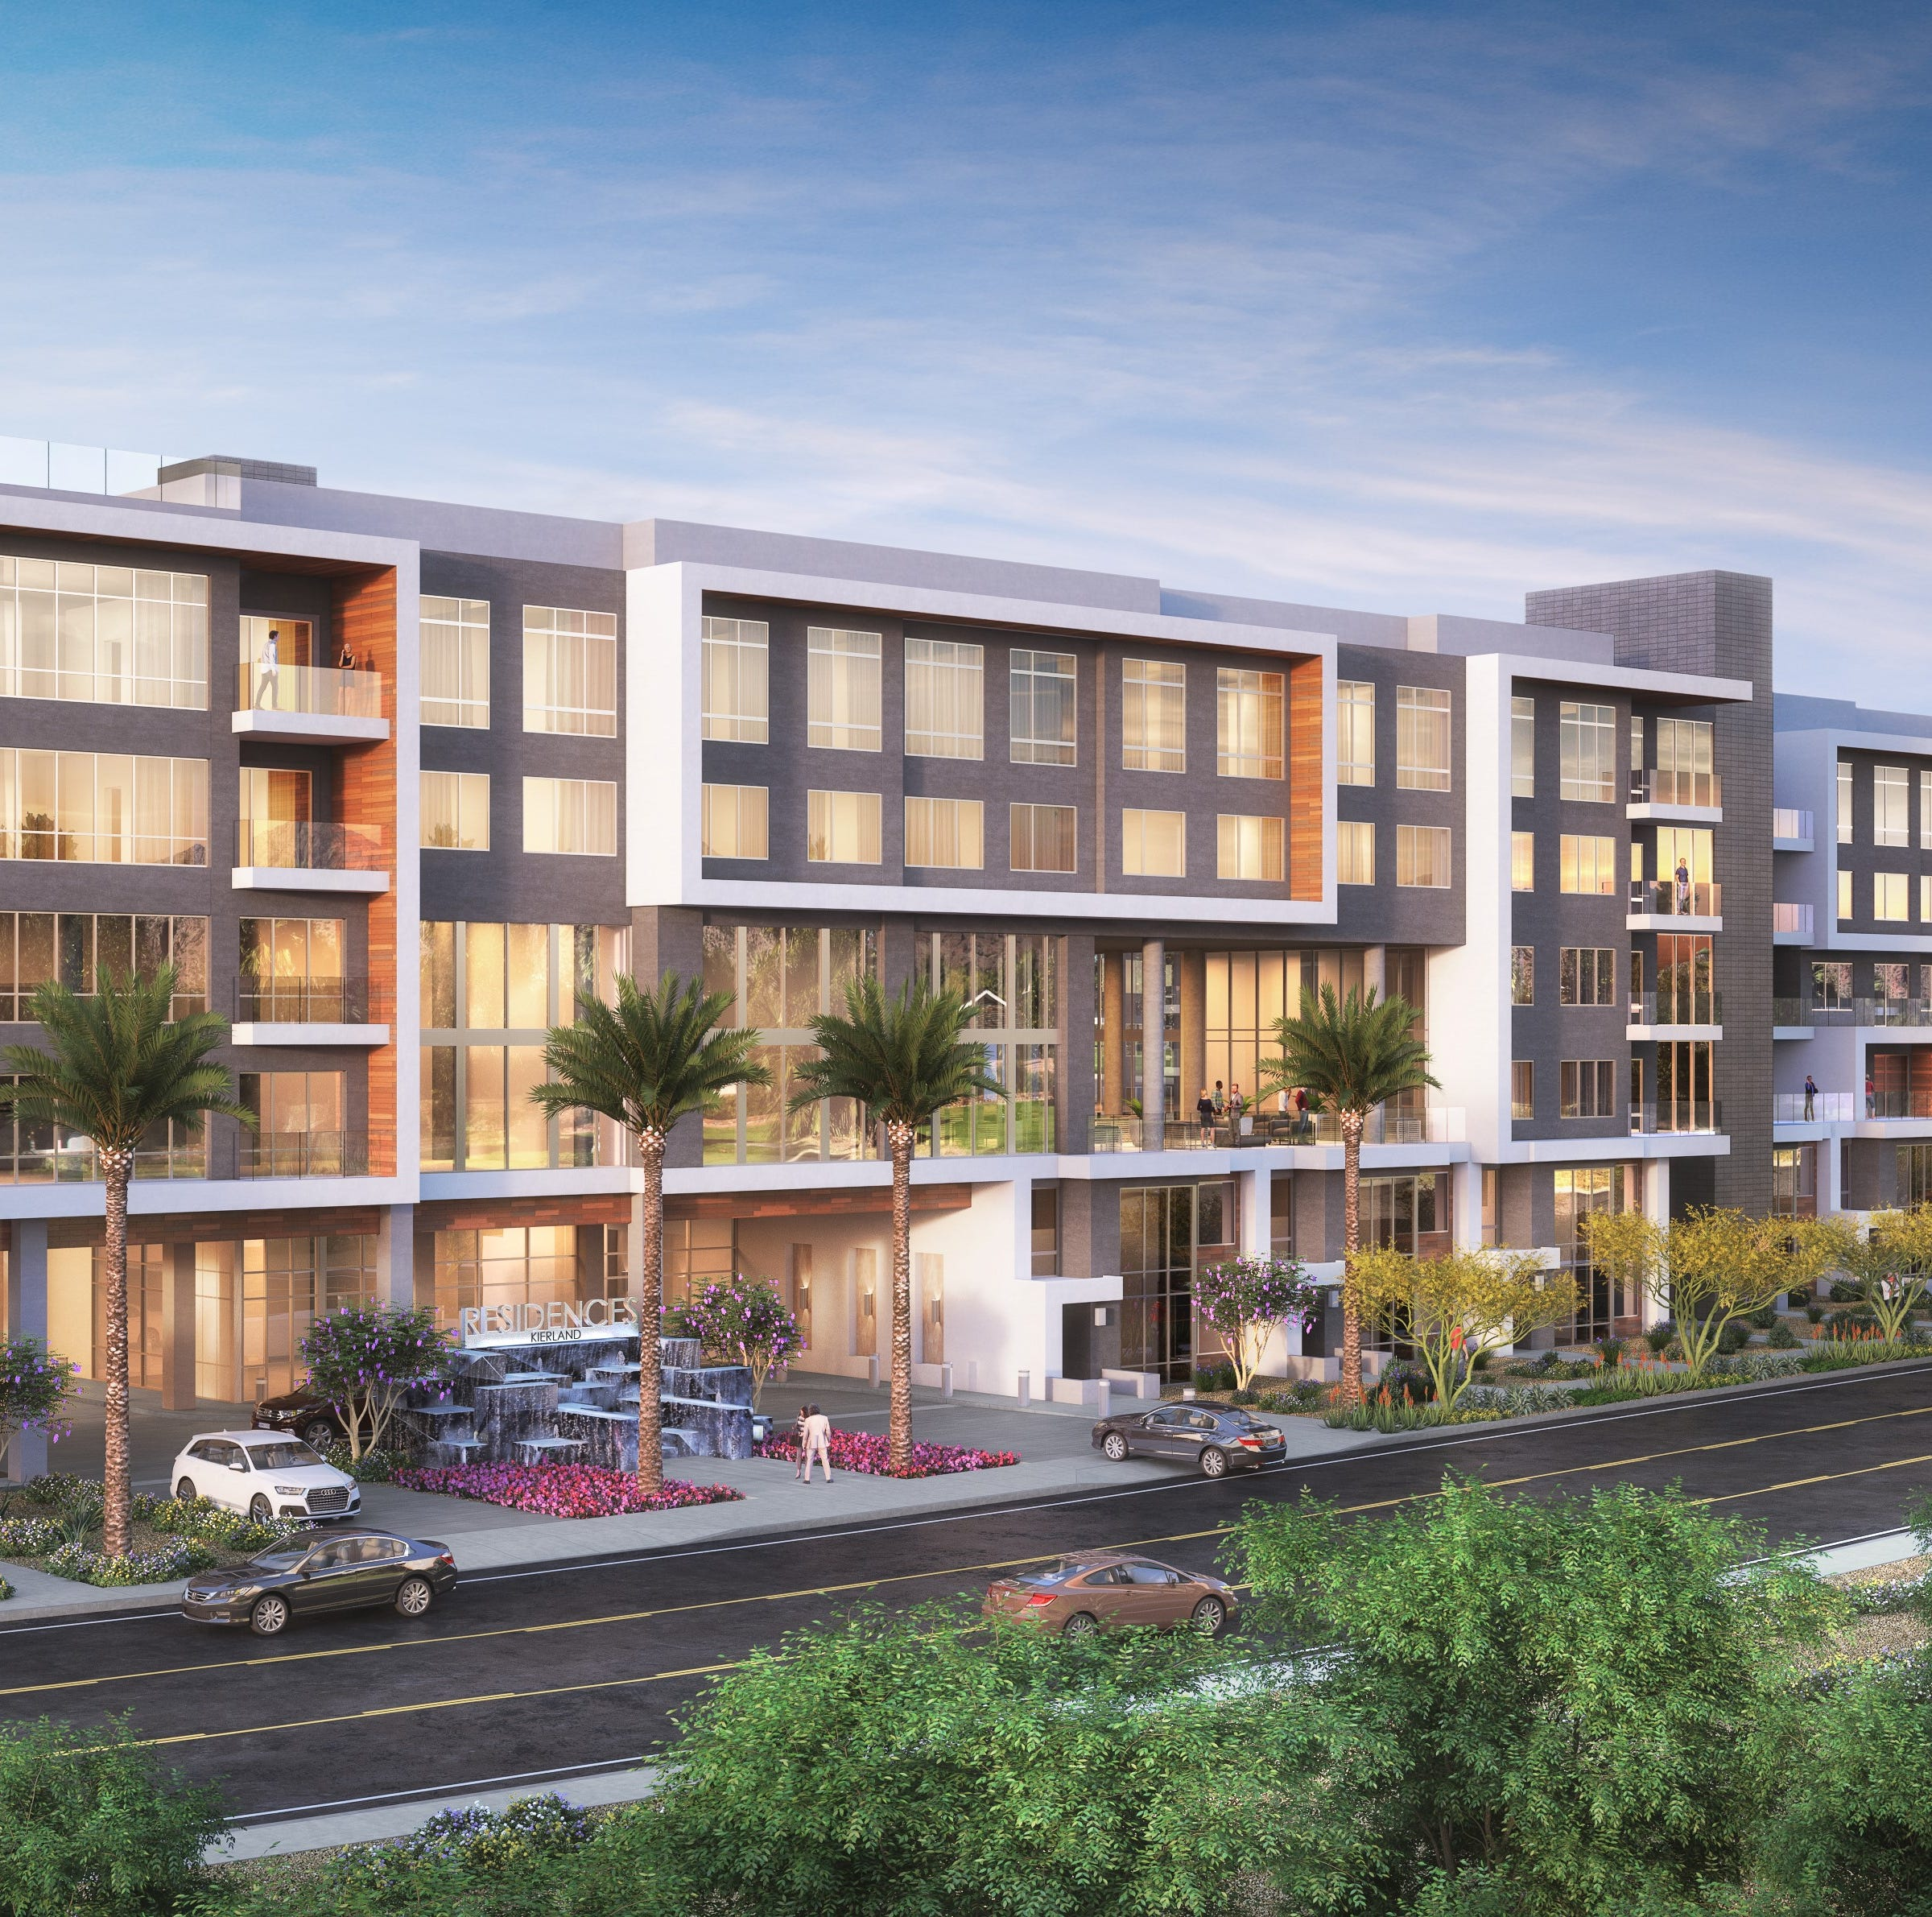 Phoenix offices to be torn down to make way for new Kierland apartments